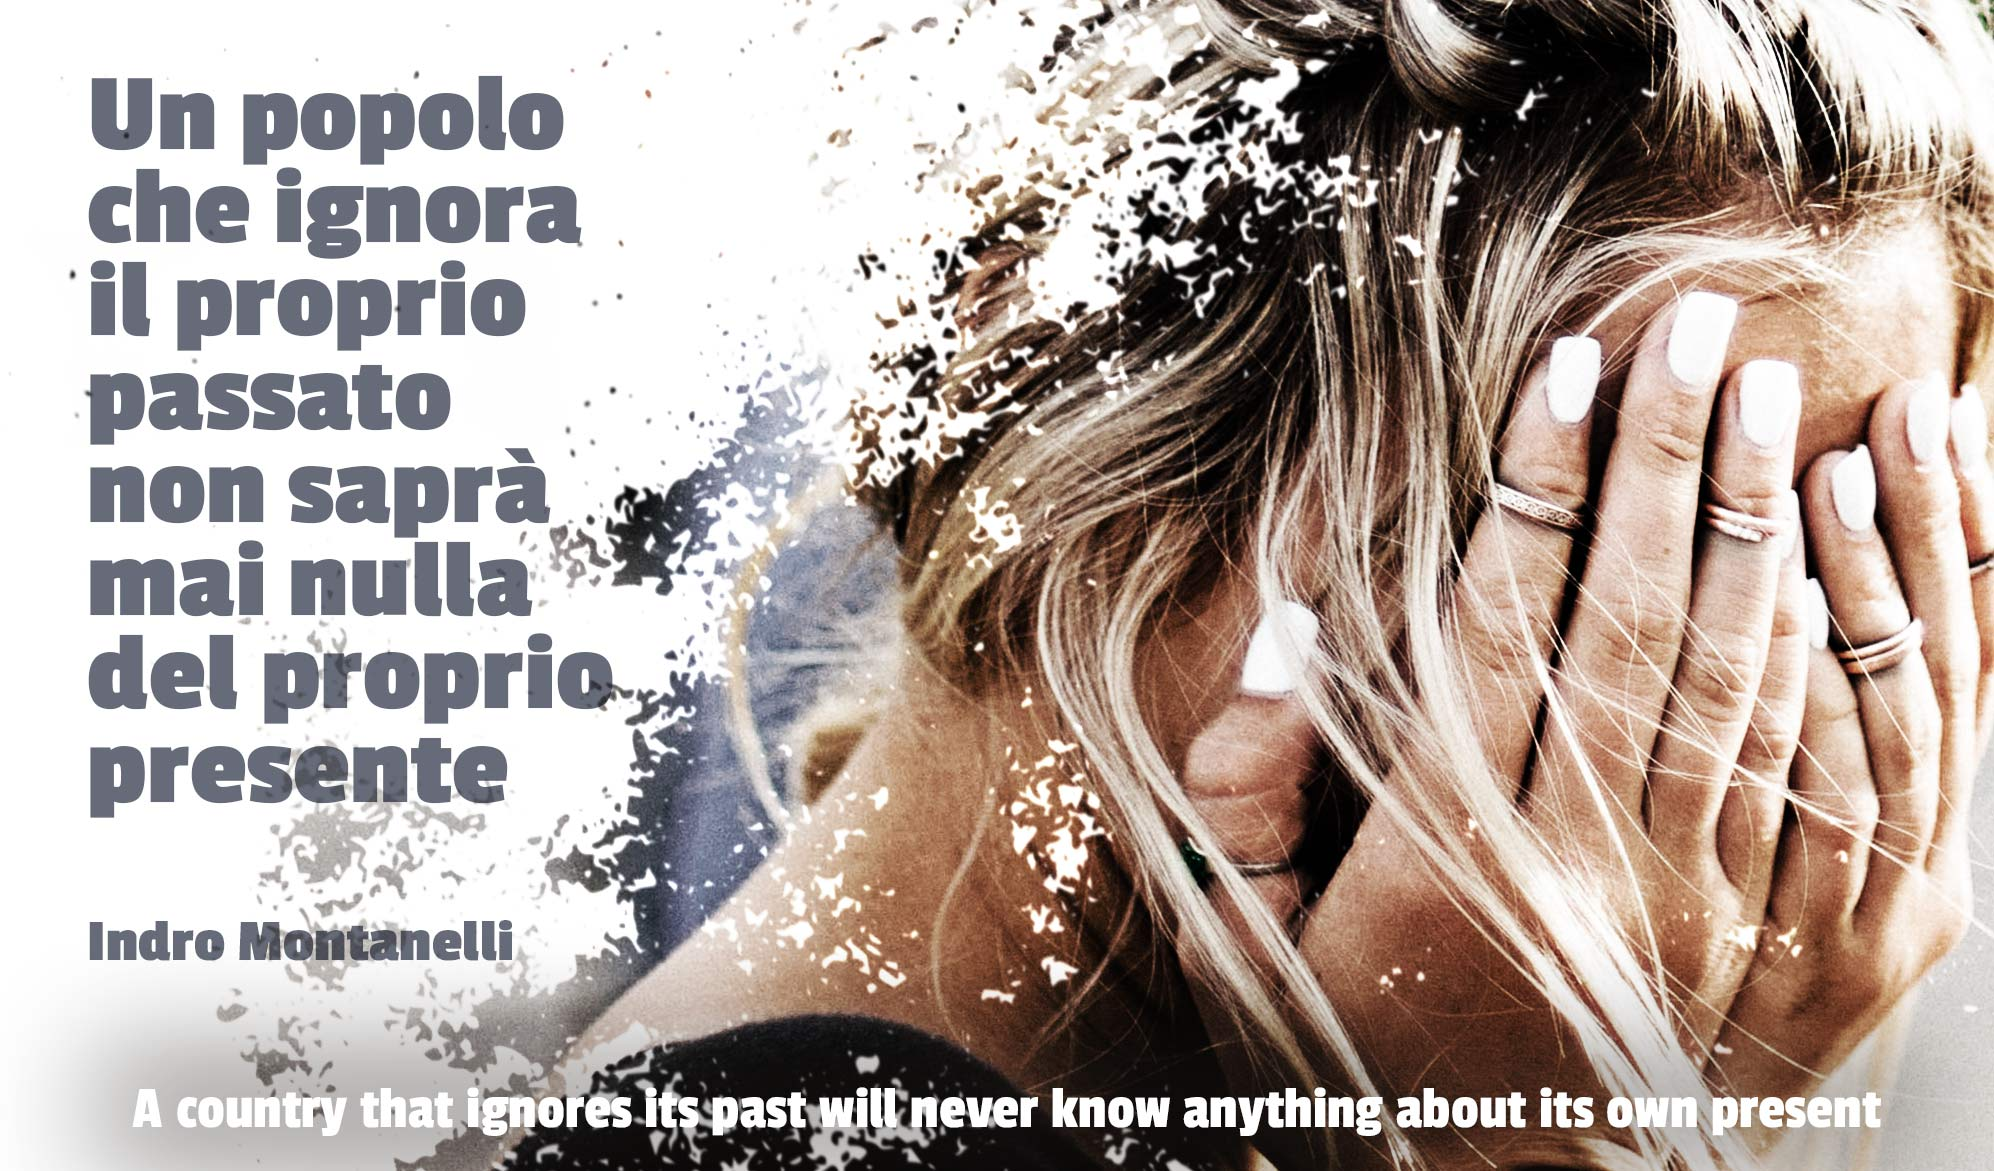 daily inspirational quote image: a woman covering her face with her hands while her background disintegrates